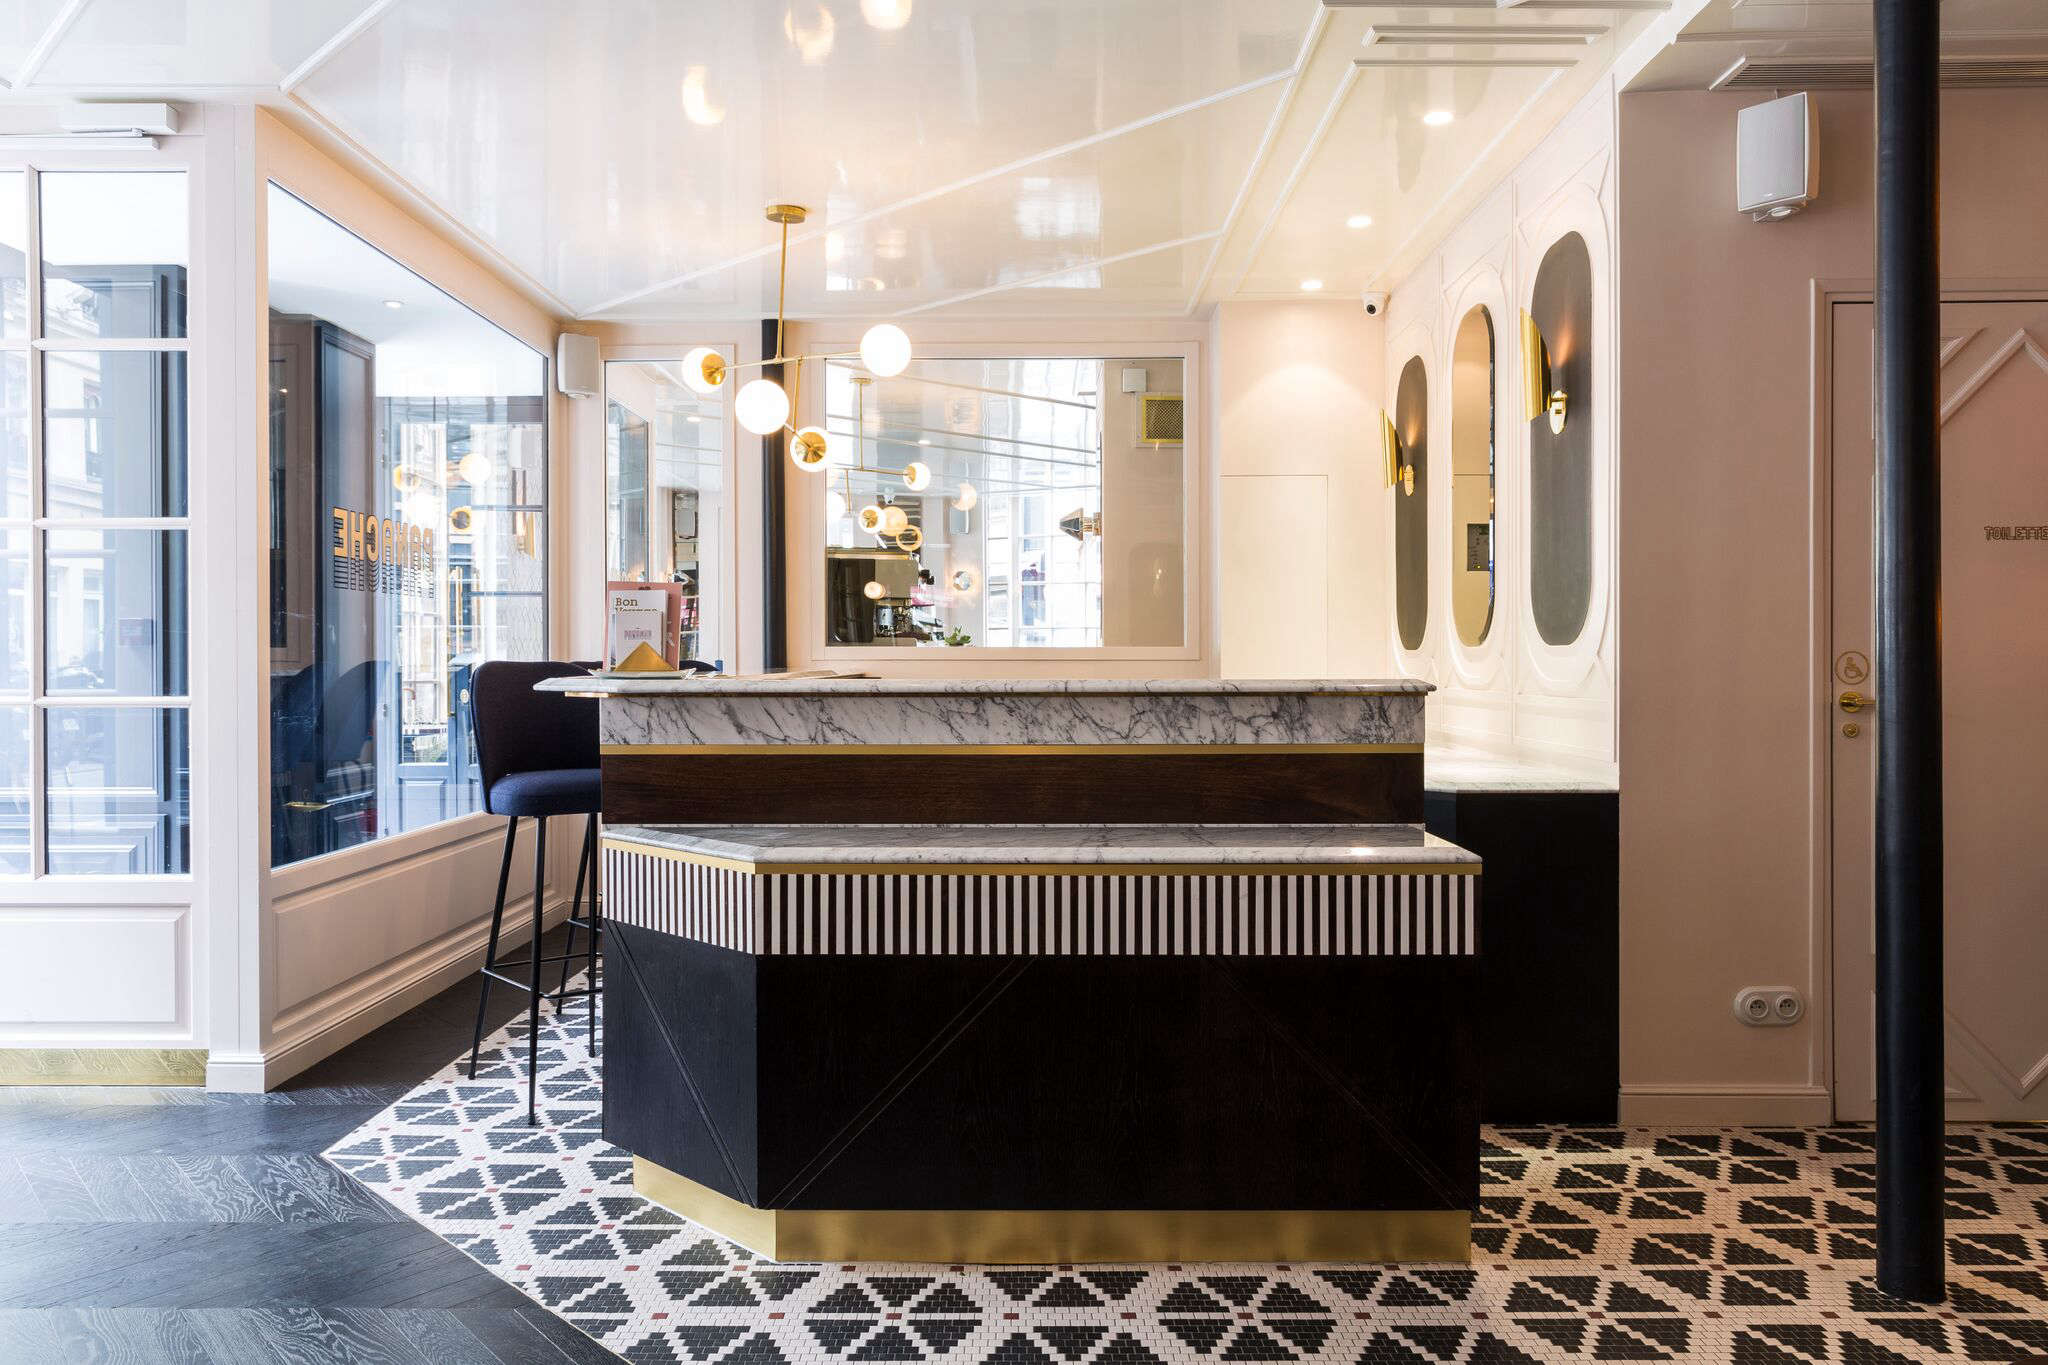 Located in the Ninth Arrondissement, near the Folies Bergères cabaret, Hotel Panache is in a late-th-century building on the corner of Rue Geoffroy Marie and Rue du Fauborg Montmartre that, says Meilichzon, &#8